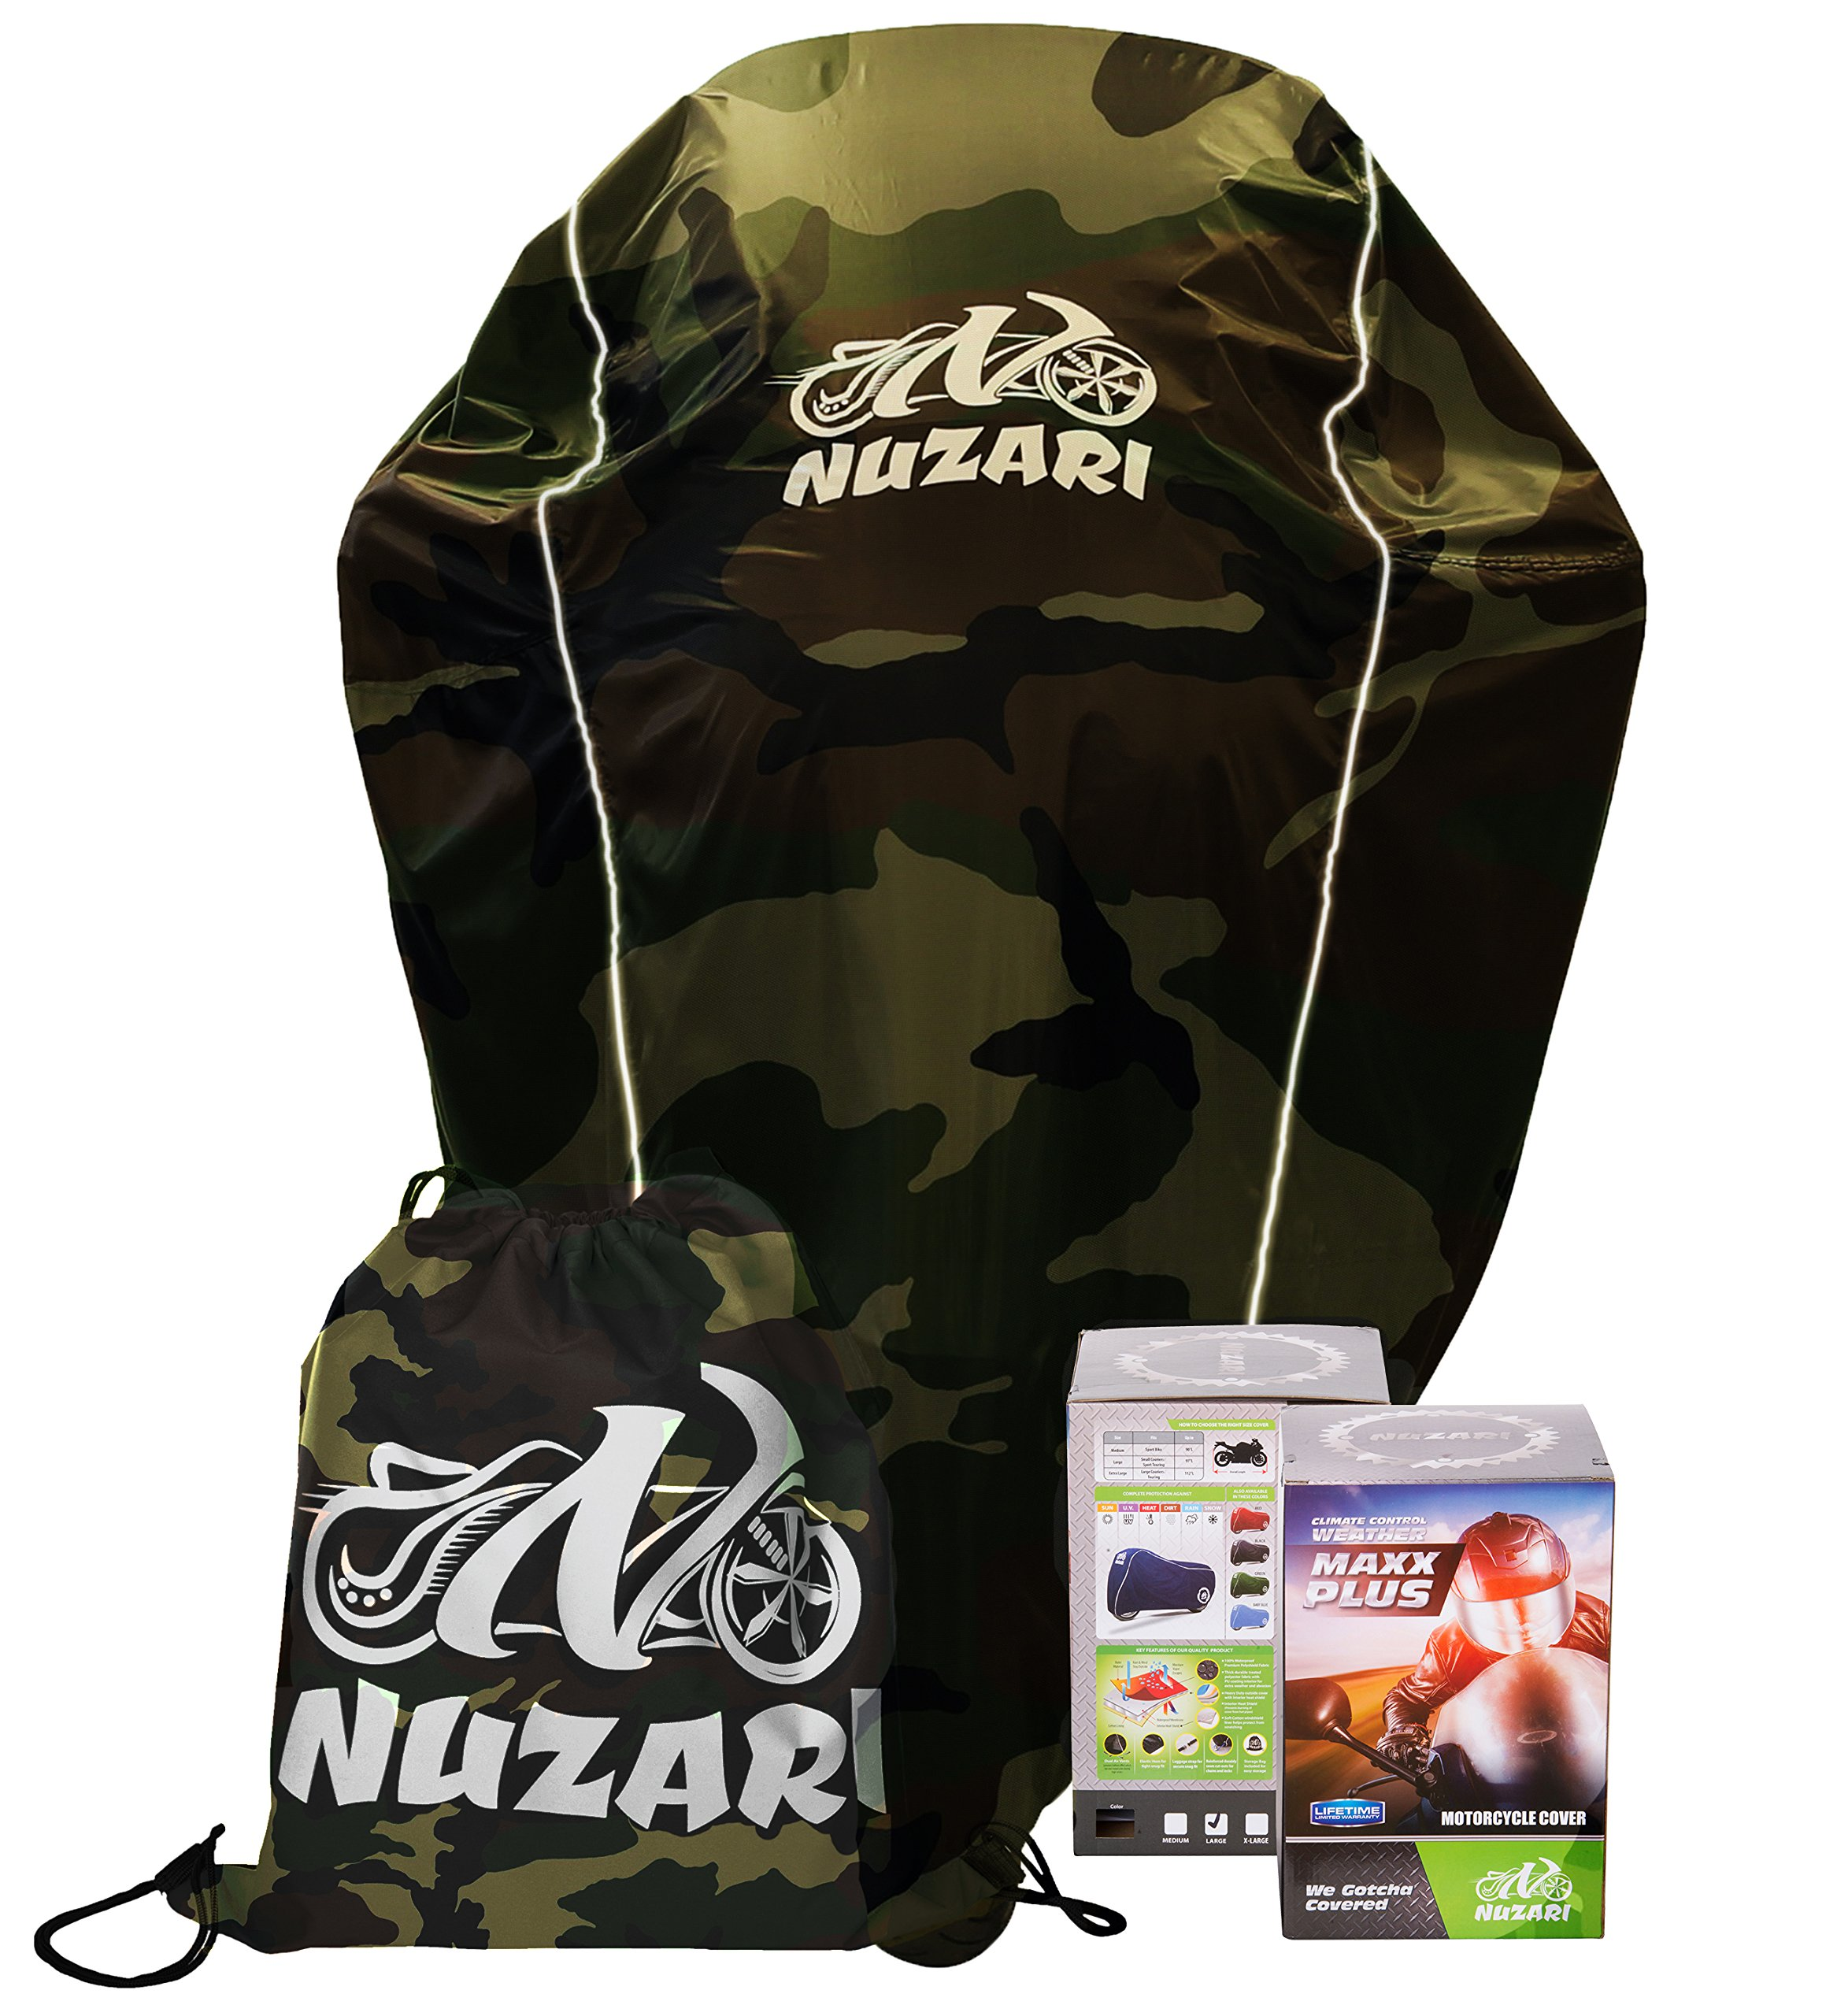 Premium Weather Resistant Covers Waterproof Polyester w/Soft Screen & Heat Resistant Shields.Motorcycle Cover has Lockable fabric, Durable & Long Lasting.Sportbikes & Cruisers (XX-Large, Camouflage) by Nuzari (Image #4)